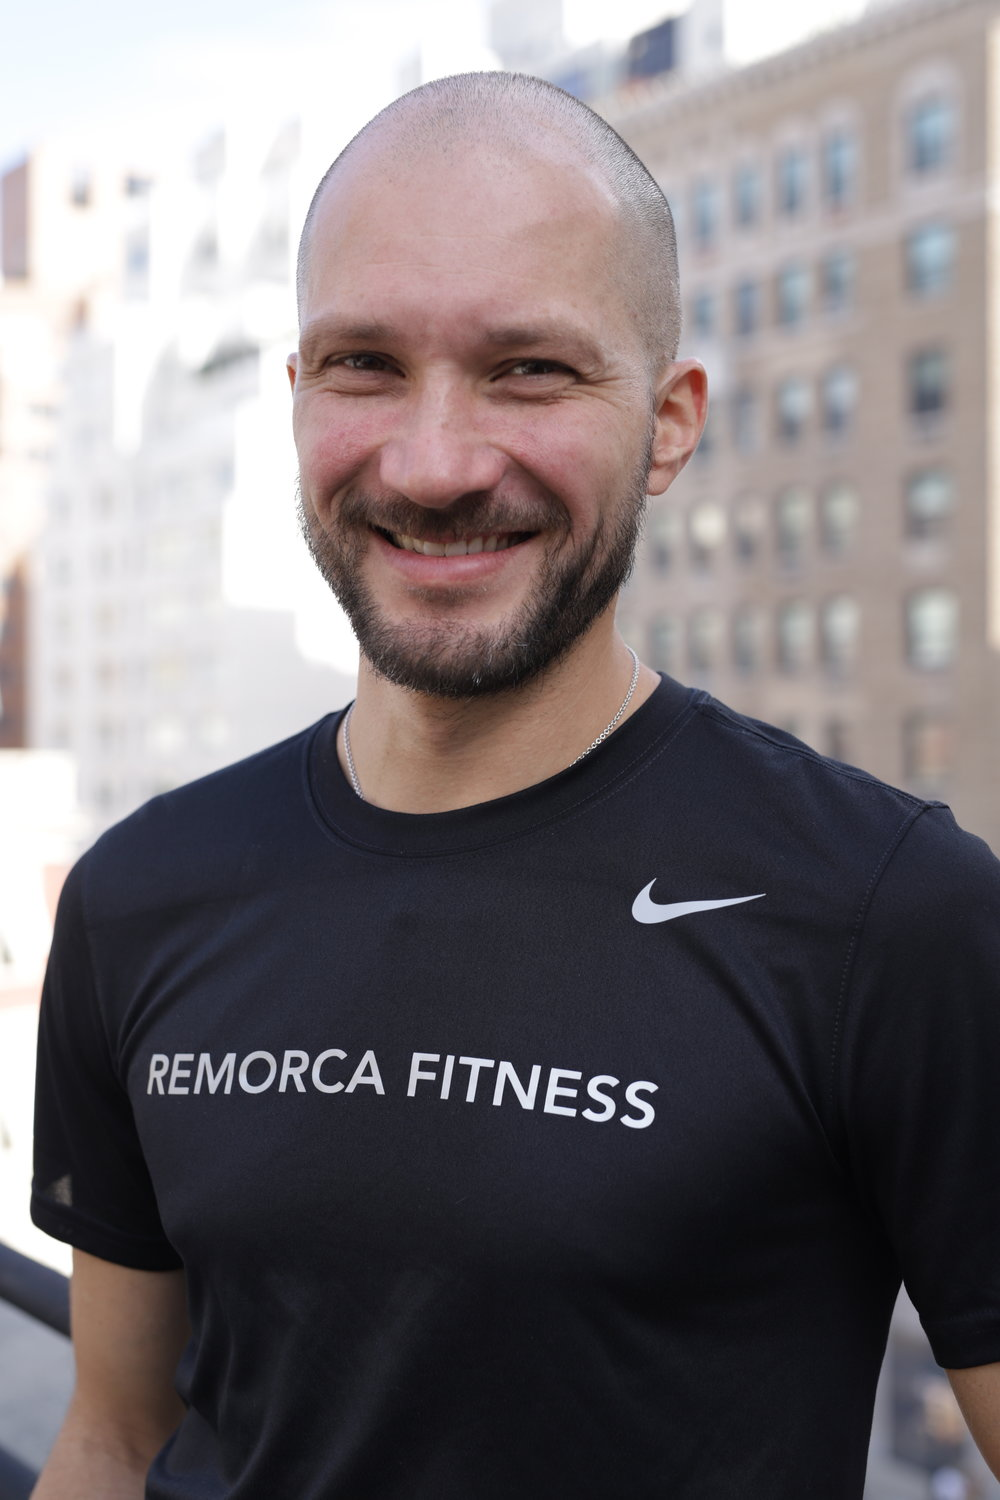 GIRAY - CO-OWNER REMORCA FITNESS UPPER EAST SIDEFITNESS HOBBIES:CERTIFICATIONS: